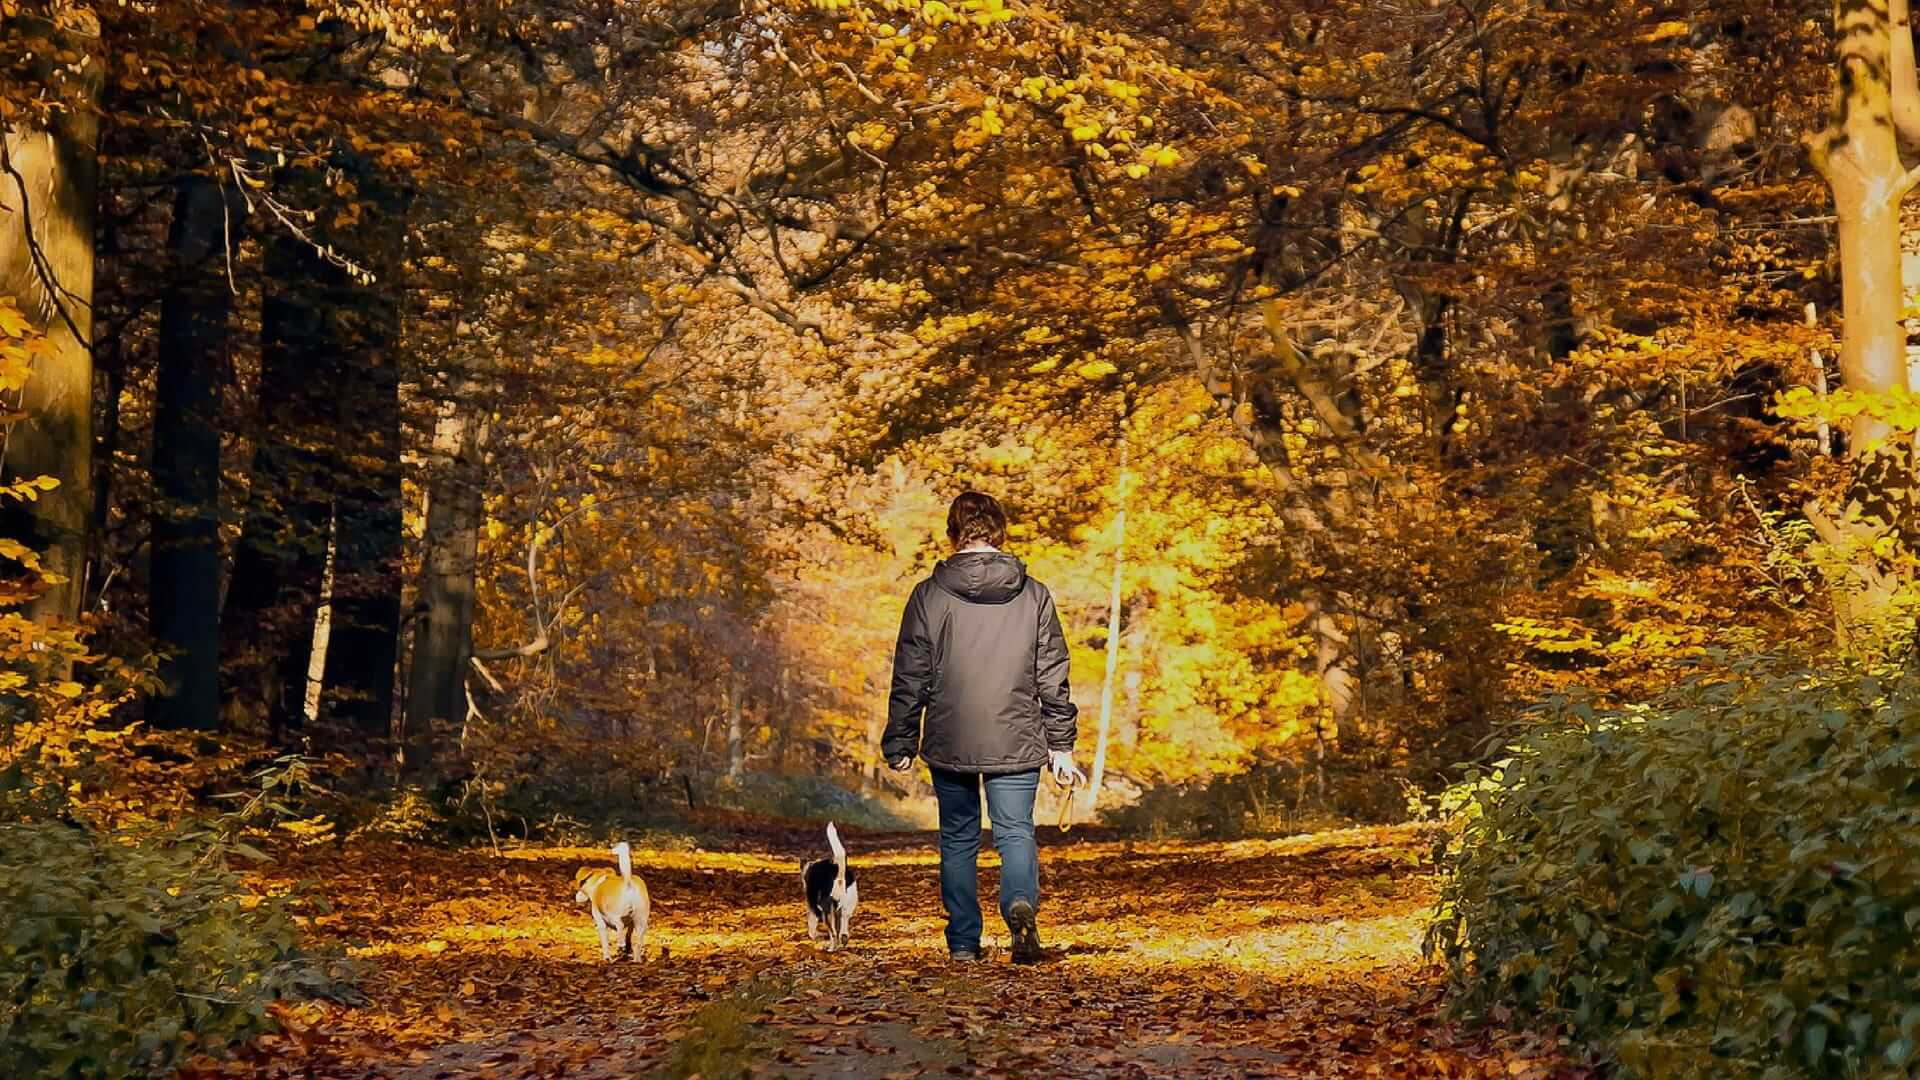 How often should you walk your dog? Here's what to consider